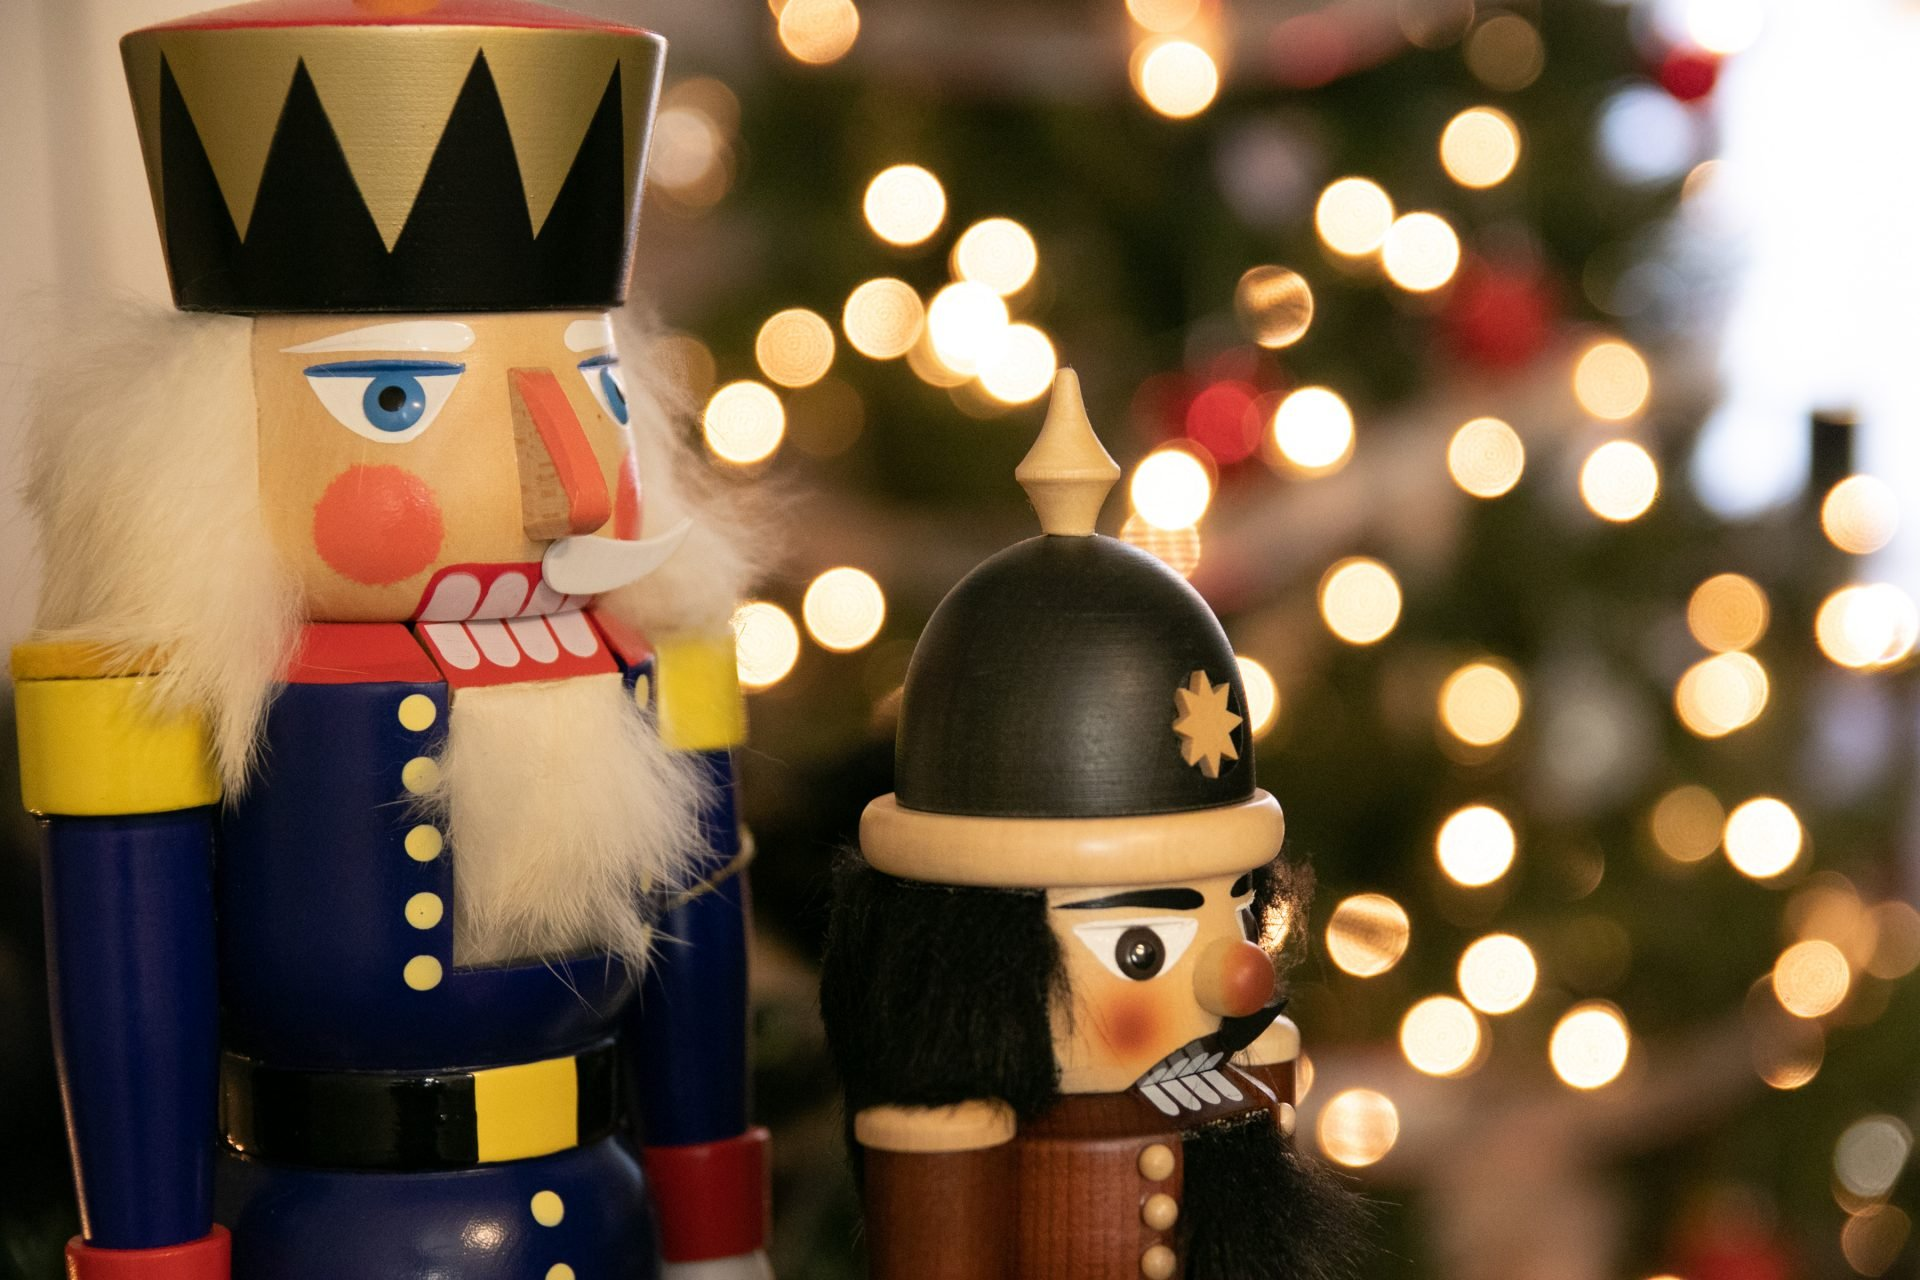 Nutcrackers Near Lit Christmas Tree